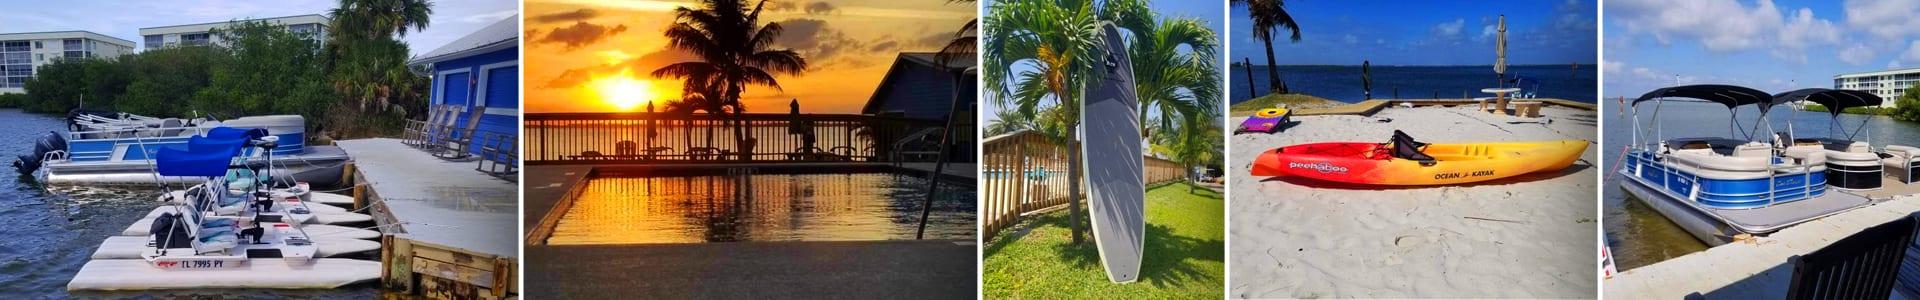 Paddleboard and Kayak Rentals in Cocoa Beach